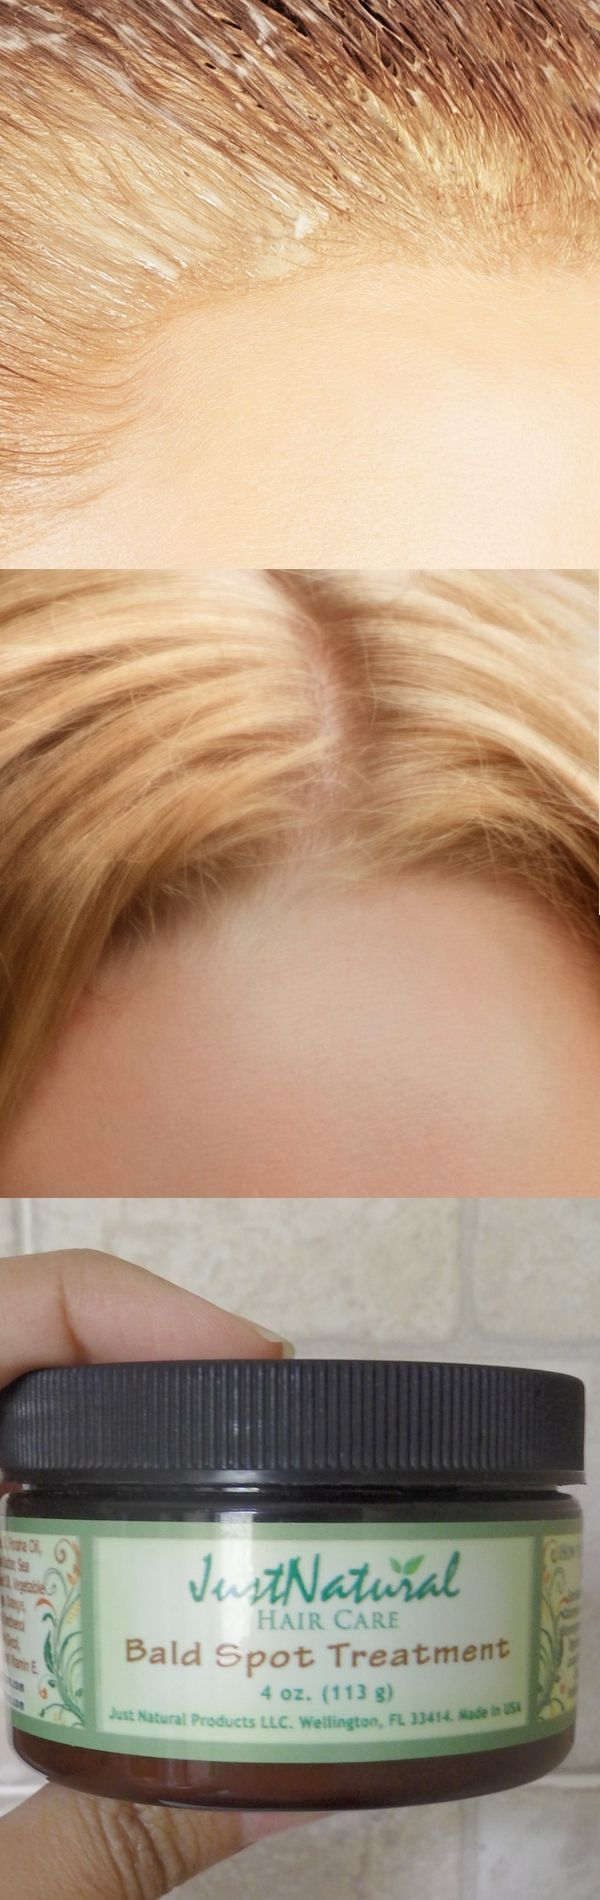 I'm 42 yrs old and have hair all over my head but it's very fine and thin -ponytail the size of a small pencil. This cream was, truly, almost miraculous. My ponytail isn't really bigger but my hair looks significantly thicker and fuller. Even the woman who cuts my hair noticed a difference, as have friends and relatives.